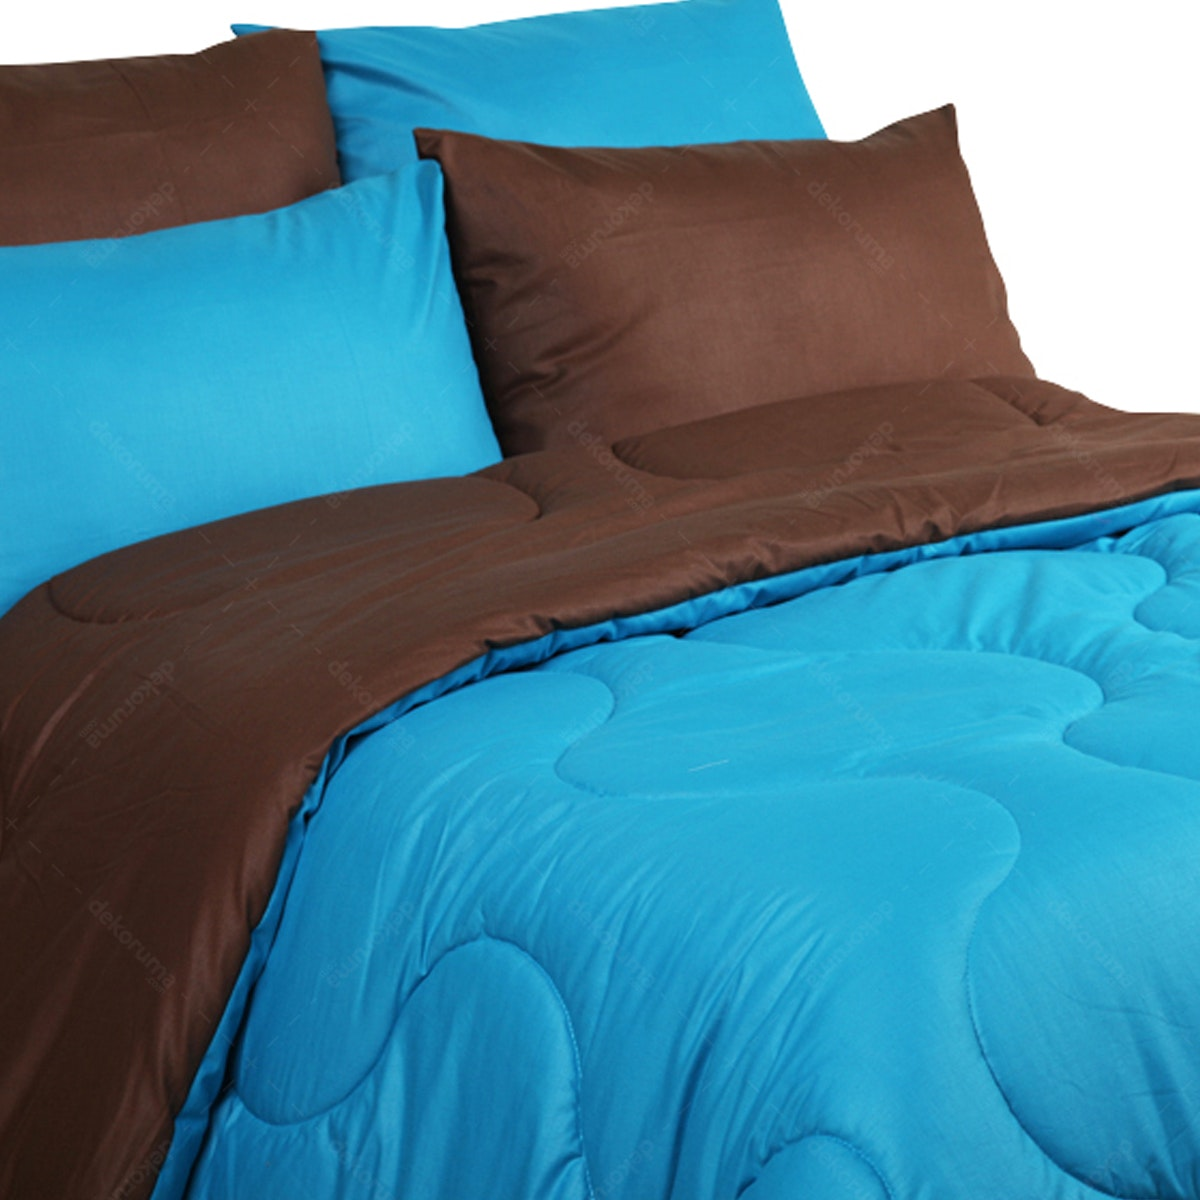 Sierra Bed Cover Dan Sprei Polos Coffee Mix Tosca 160x200